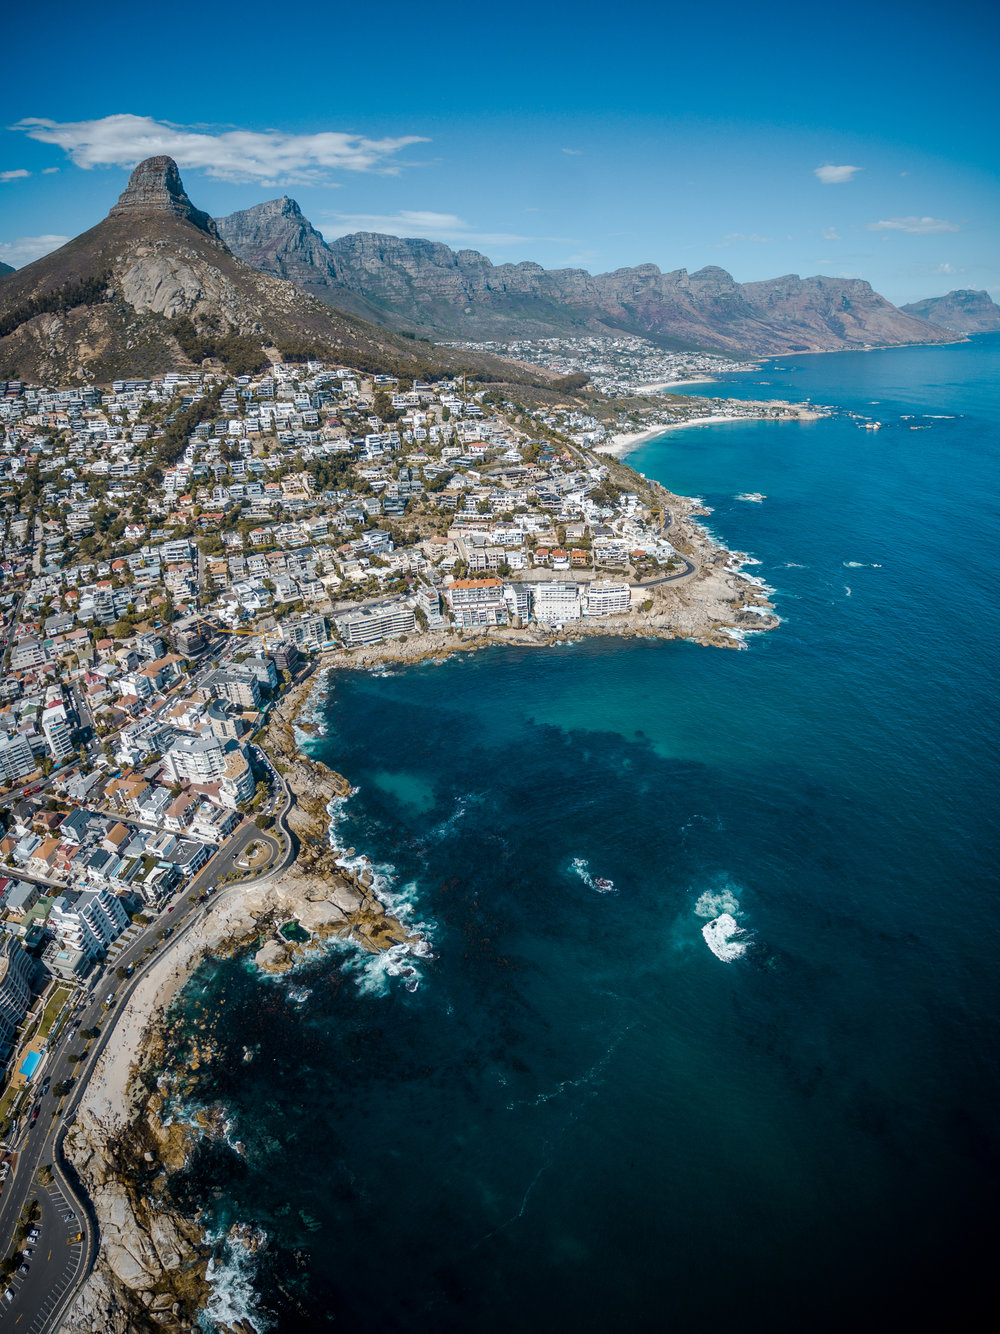 Cape Town, South Africa. You ready for some views like this?